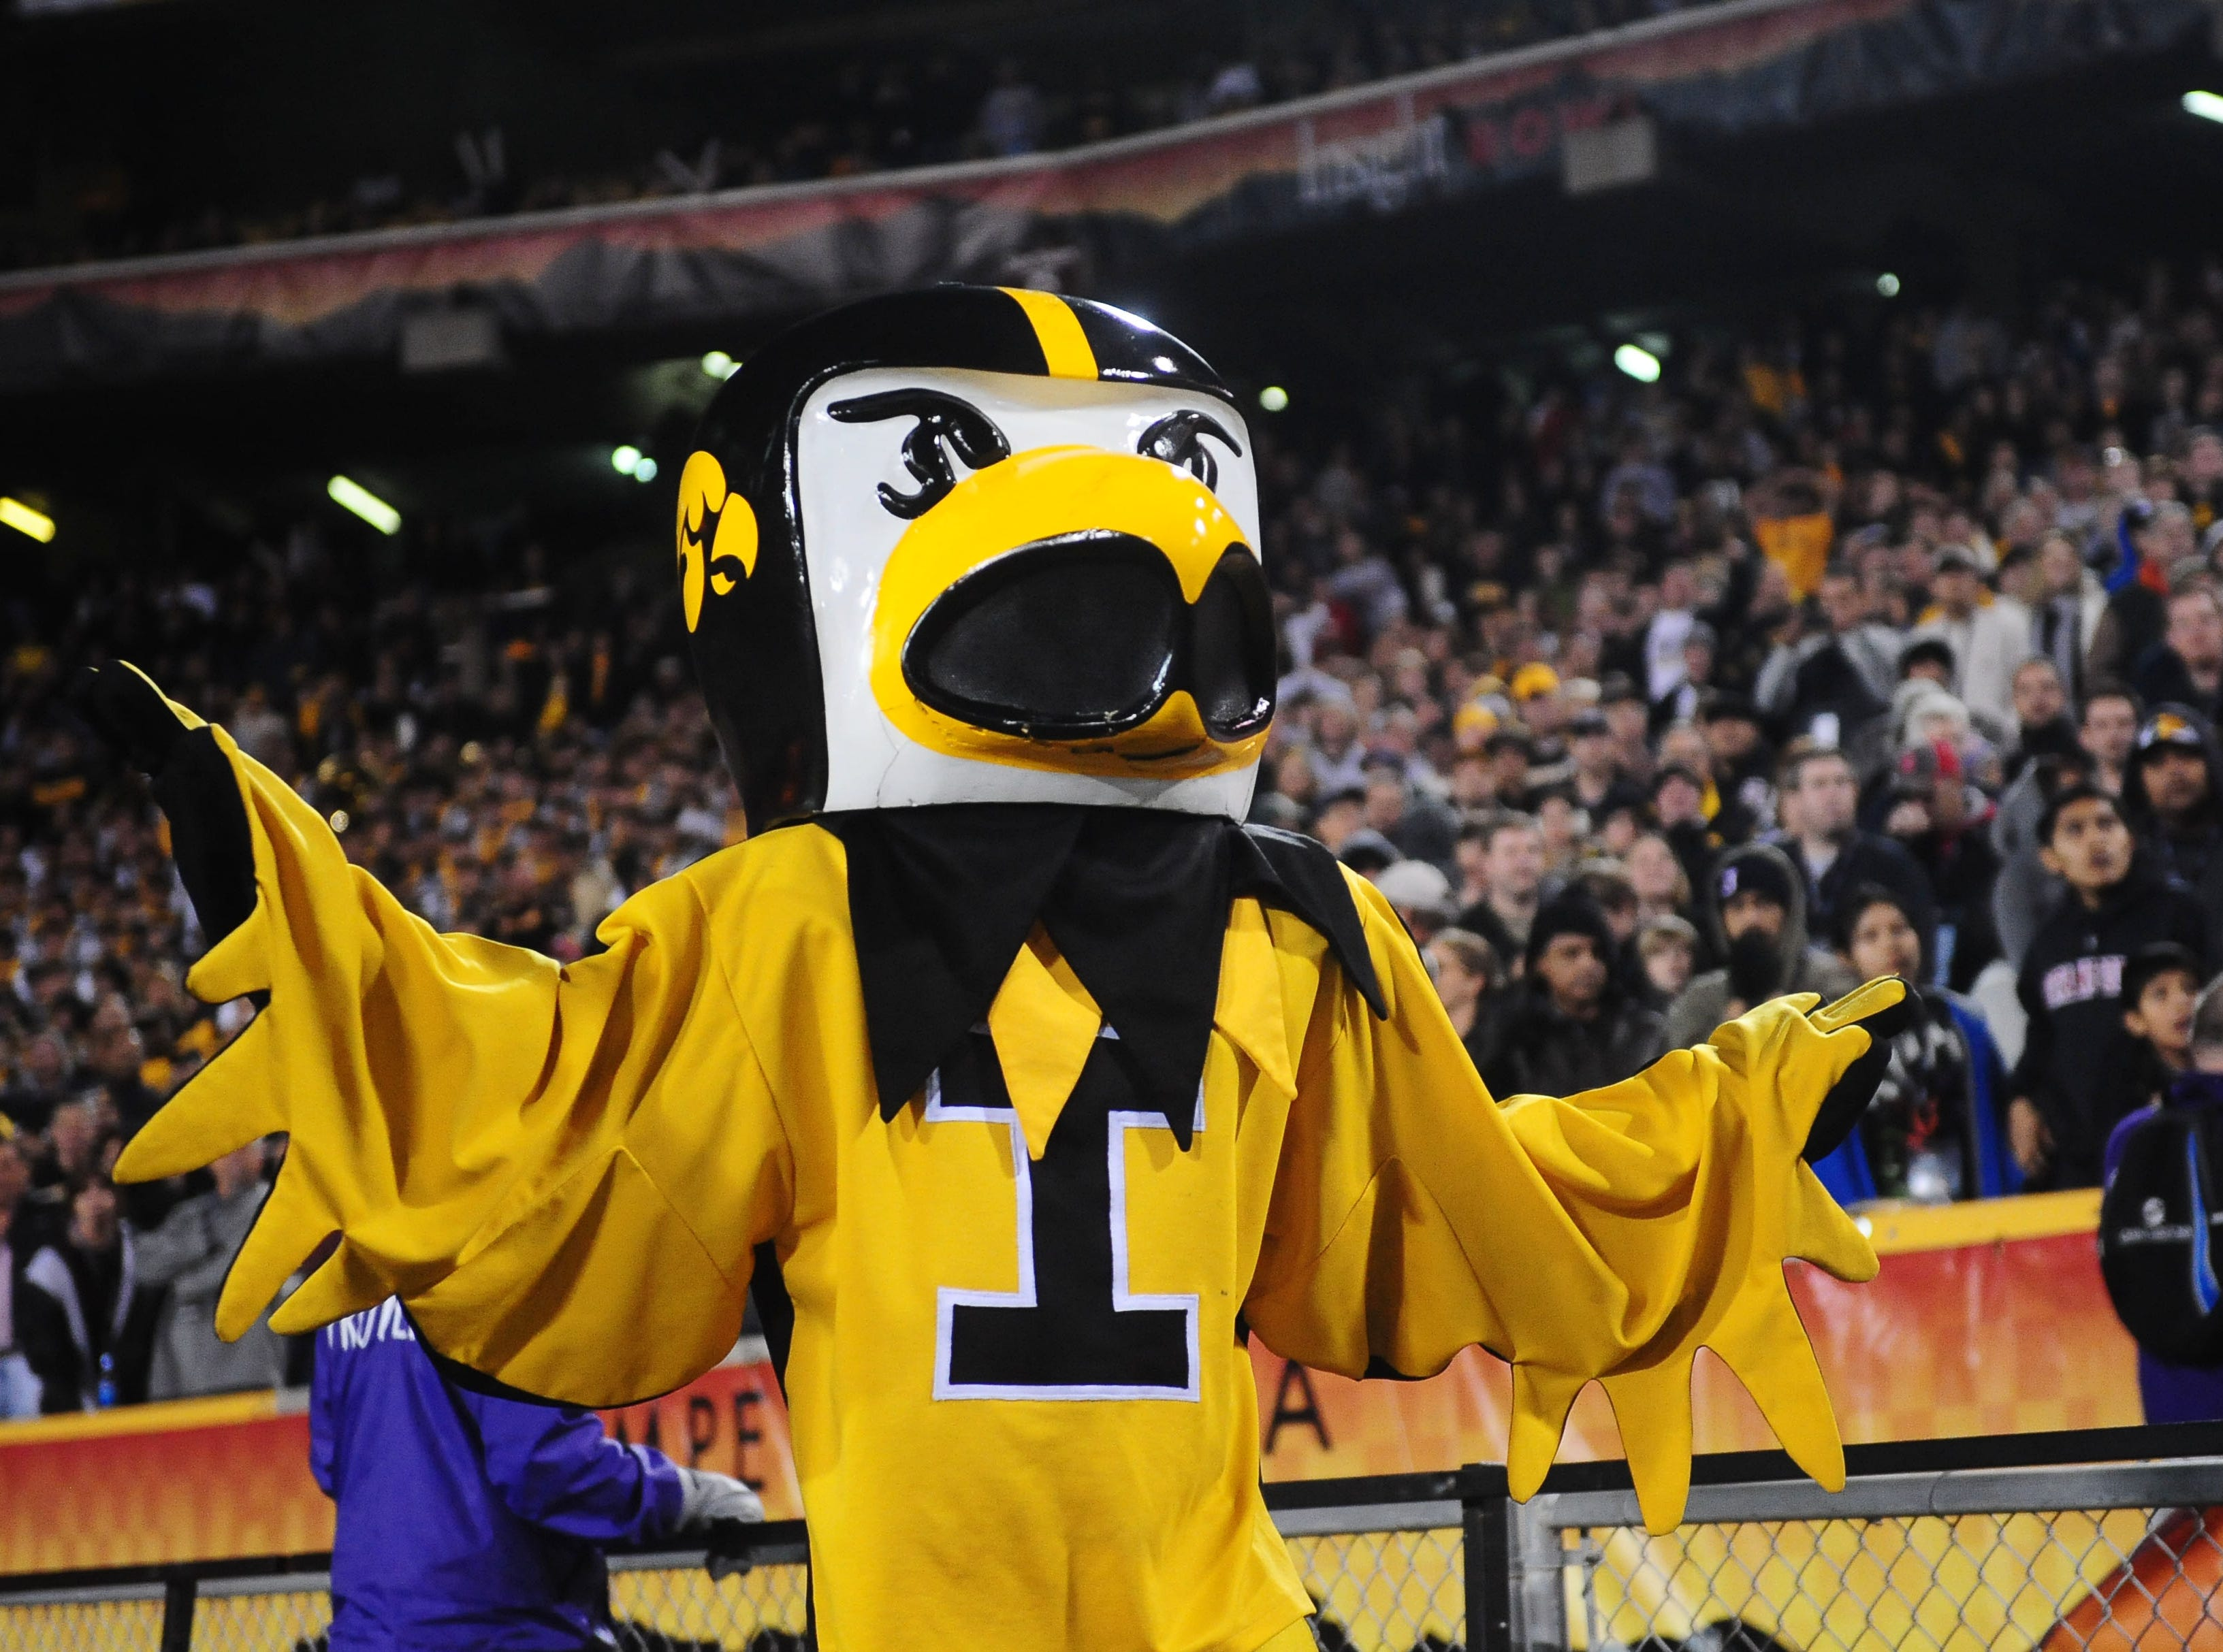 Dec. 28, 2010; Tempe, AZ, USA; Iowa Hawkeyes mascot Herky the Hawk against the Missouri Tigers in the 2010 Insight Bowl at Sun Devil Stadium. Iowa defeated Missouri 27-24. Mandatory Credit: Mark J. Rebilas-USA TODAY Sports